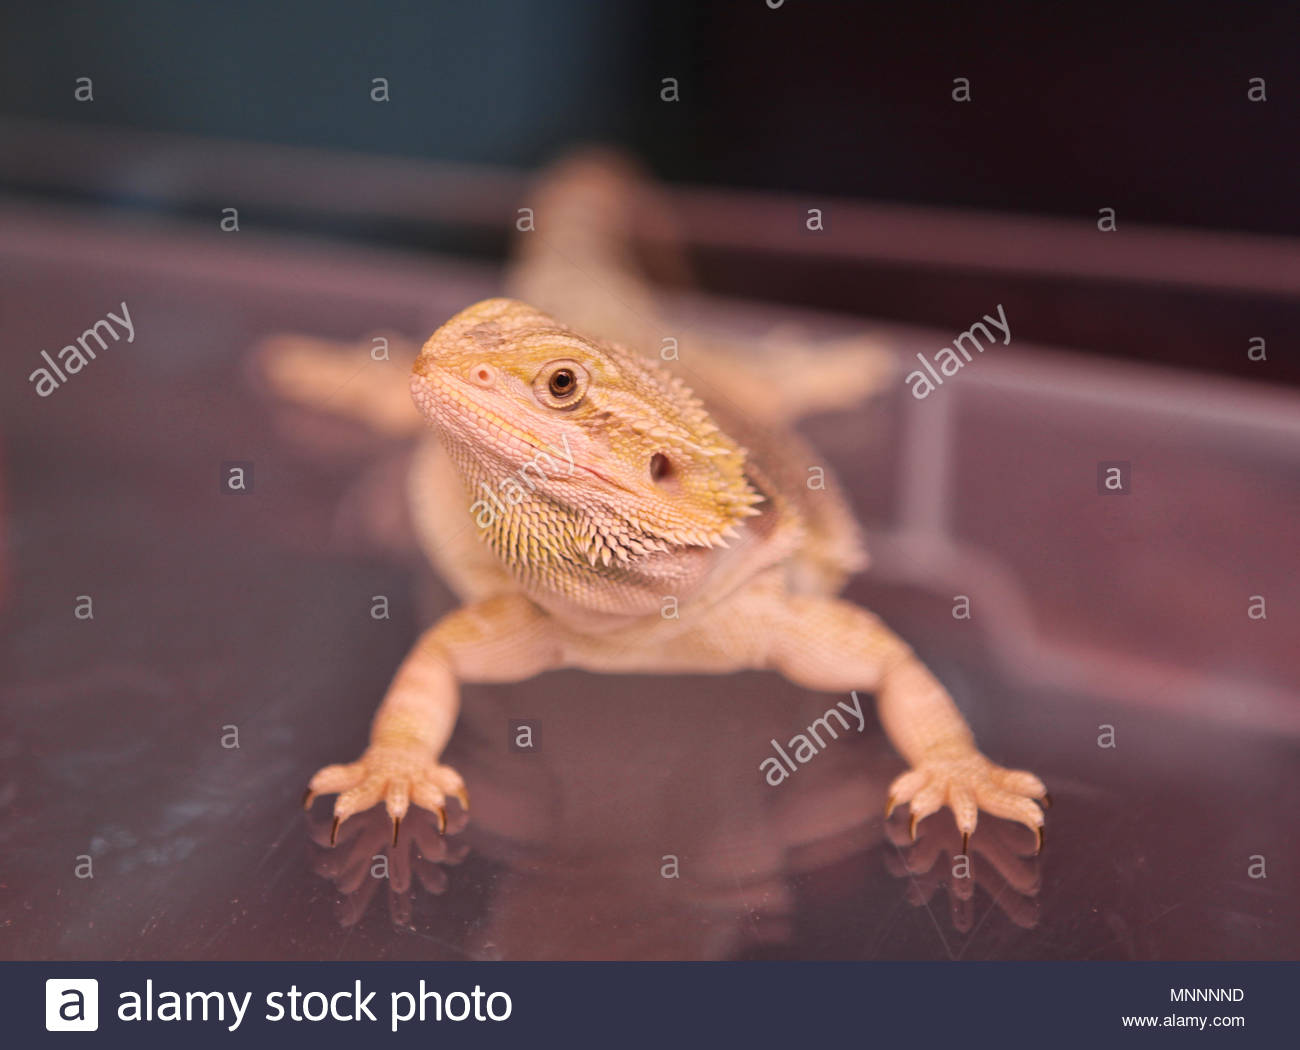 A exotic hypo-tangerine bearded dragon (Pogona) displayed at